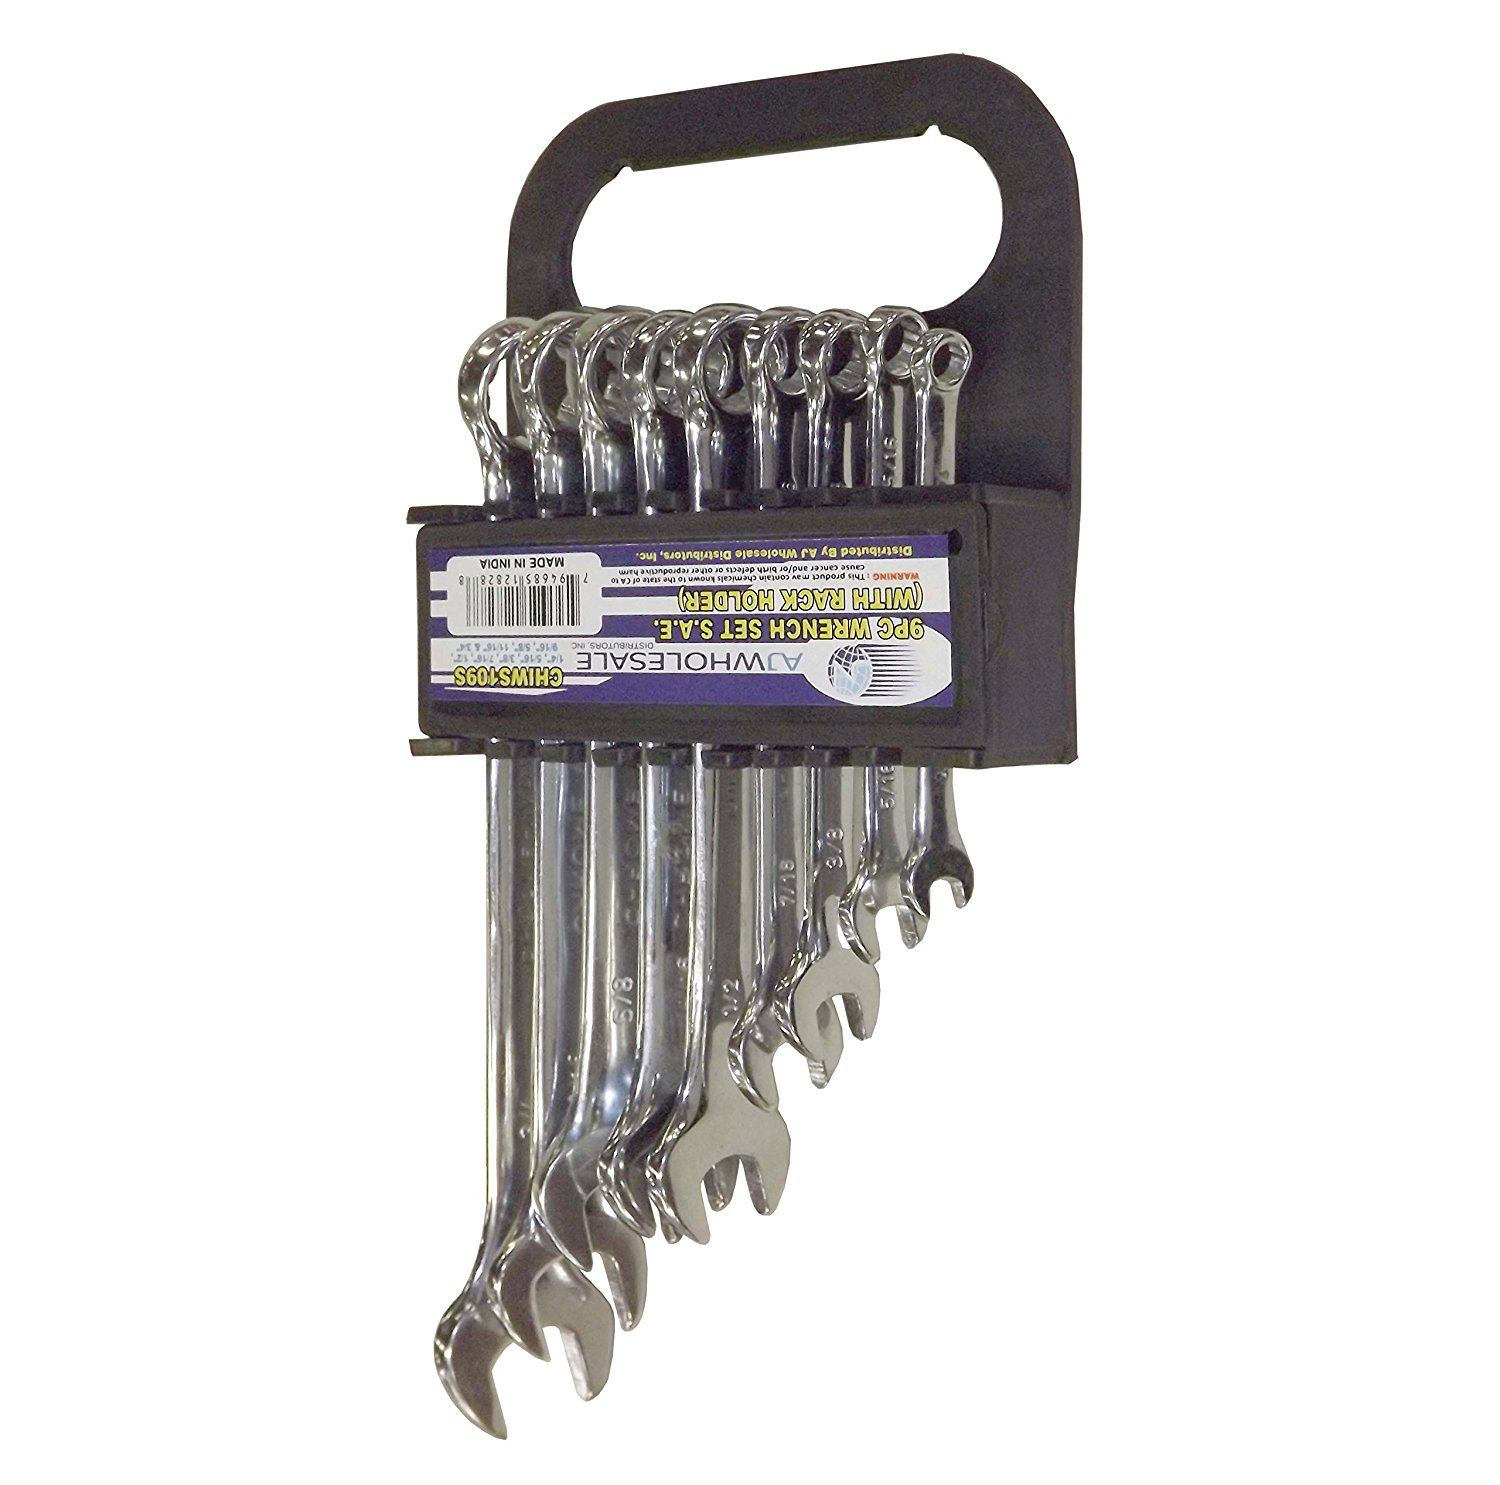 "Wrench Set SAE With Store and Go Rack Holder, 9 Piece, - 1/4"", 5/16"", 3/8"", 7/16"", 1/2"", 9/16"", 5/8"", 11/16"", 3/4"""